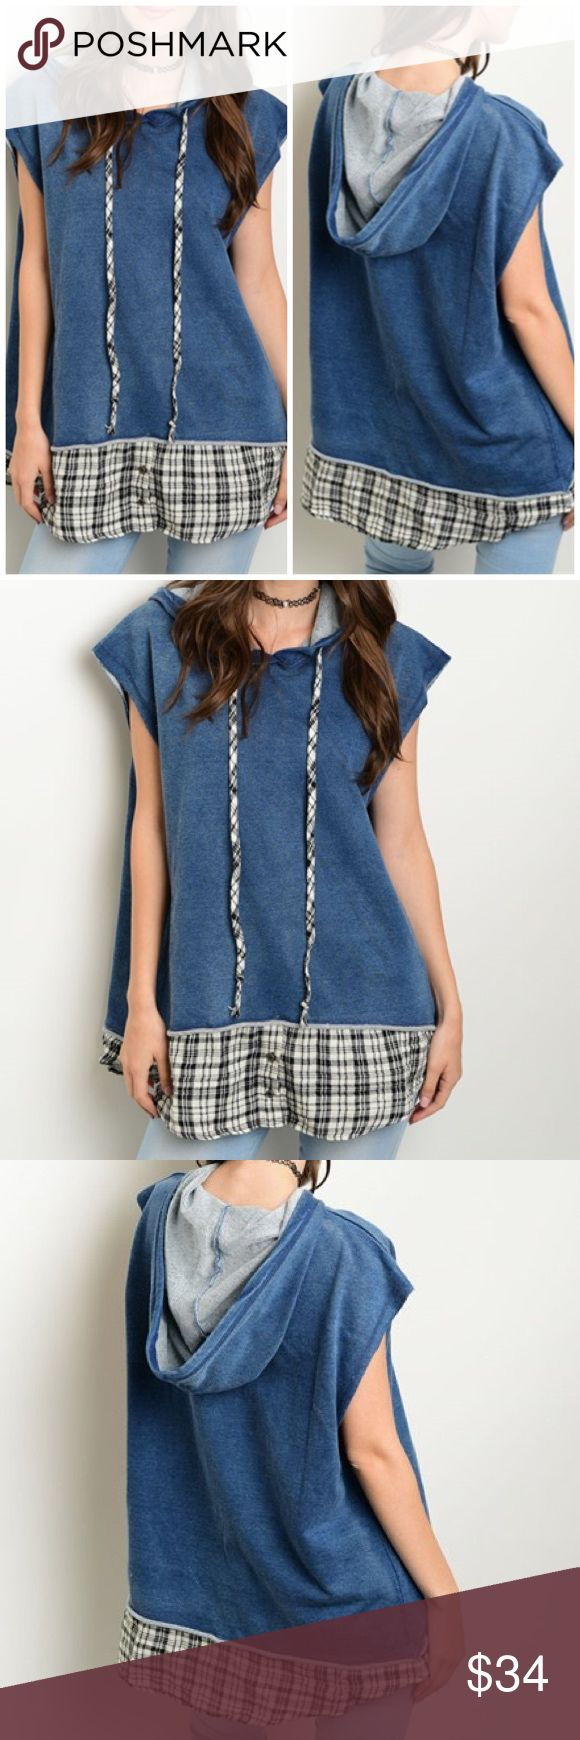 "☀️3 DAY SALE☀️Lightweight Slouchy Denim Top Denim oversized vest features plaid trim and drawstring detail. Made from 95% Cotton 5% Spandex. Marled Measures for small:  Length 31"" Bust: 46"" Bchic Tops"